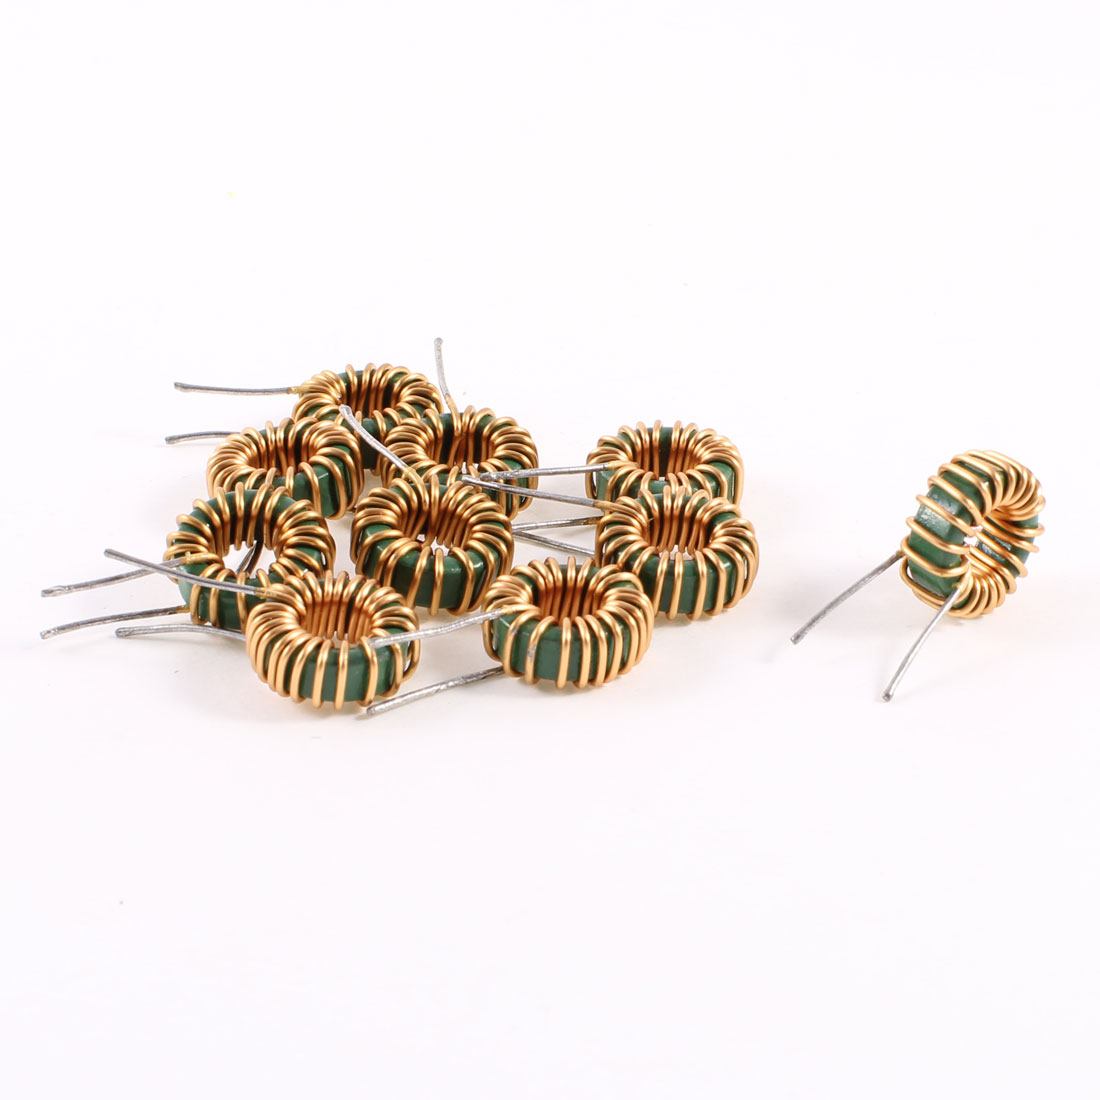 10 Pcs Toroid Core Inductor Wire Wind Wound 3MH 40mOhm 3A Coil